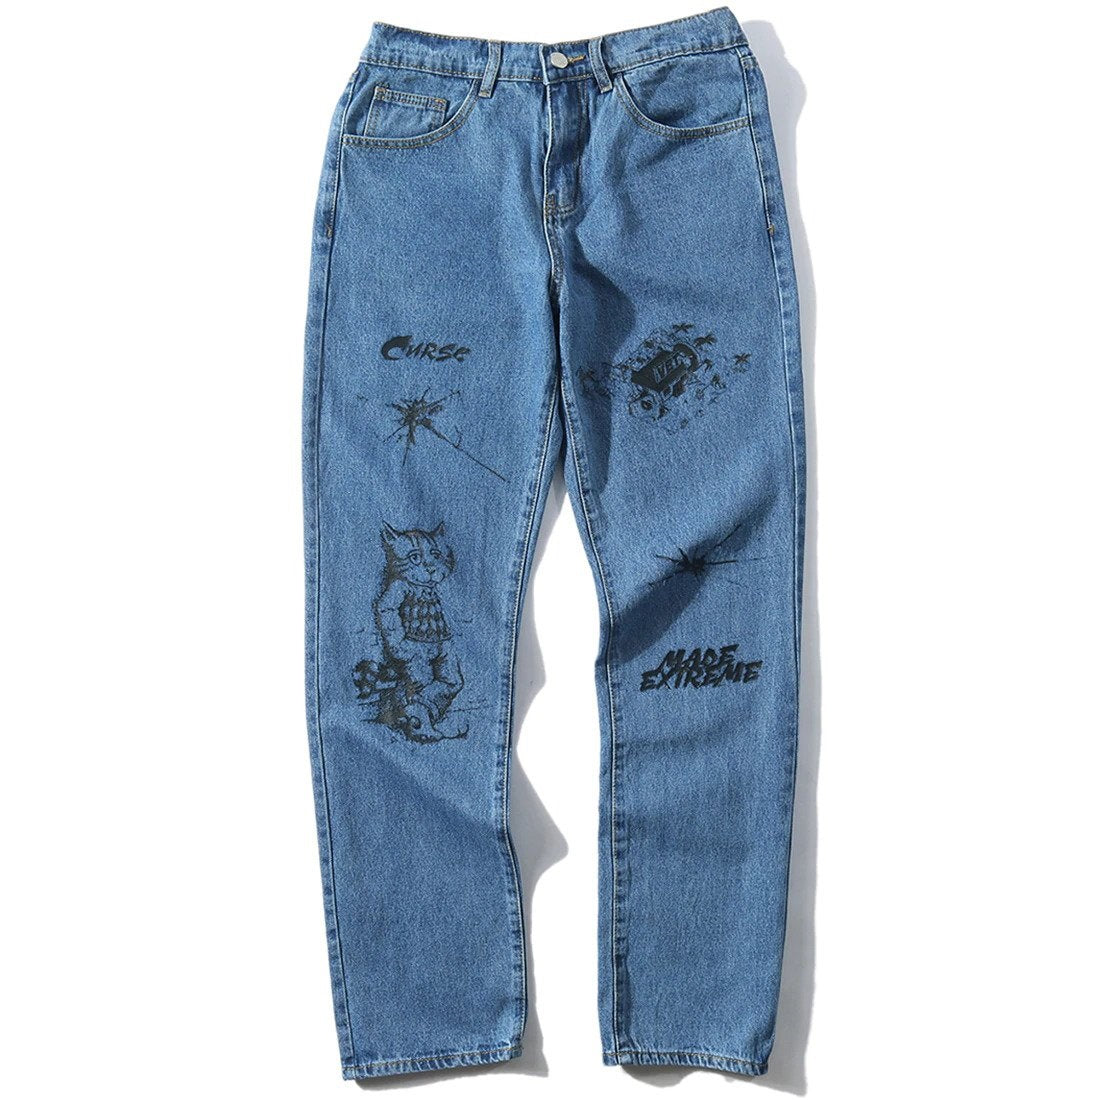 Extreme Aesthetic Customized Jeans | Clout Collection – CLOUT COLLECTION